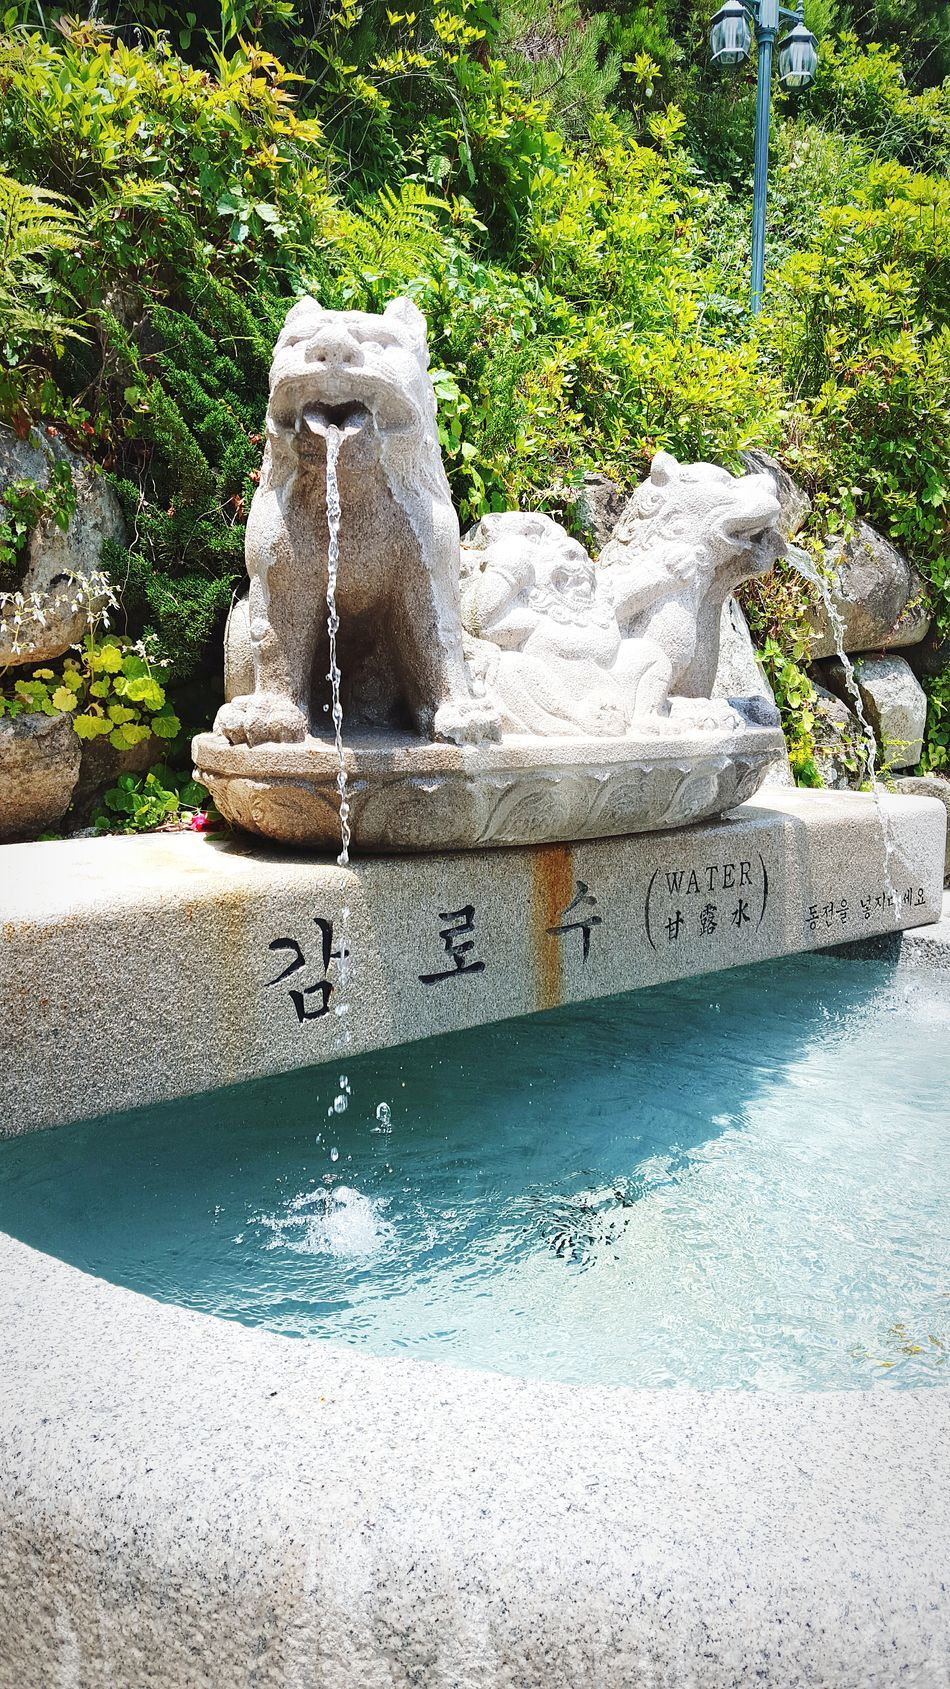 Gyeongju 경주 Seokguram 석굴암 Drinking Fountain